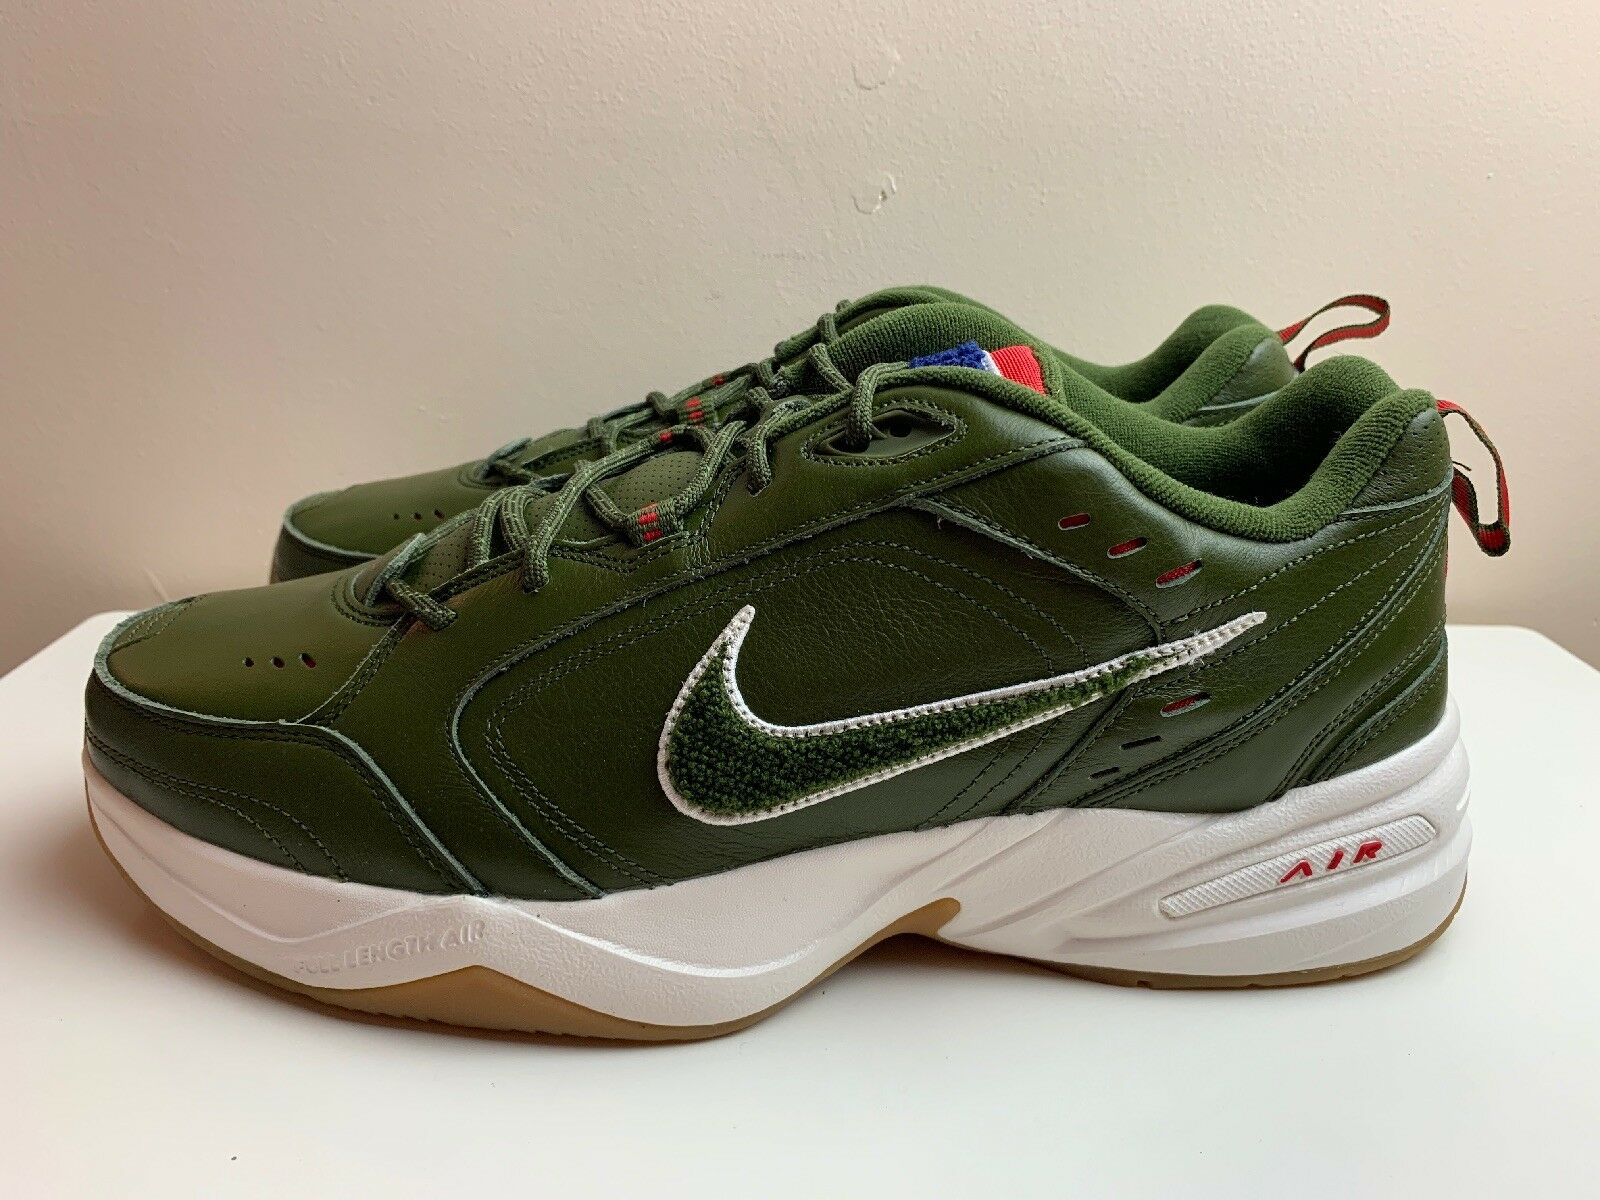 Nike Air Monarch Monarch Monarch IV PR Mens Trainers Green AV6676 300 e99b38